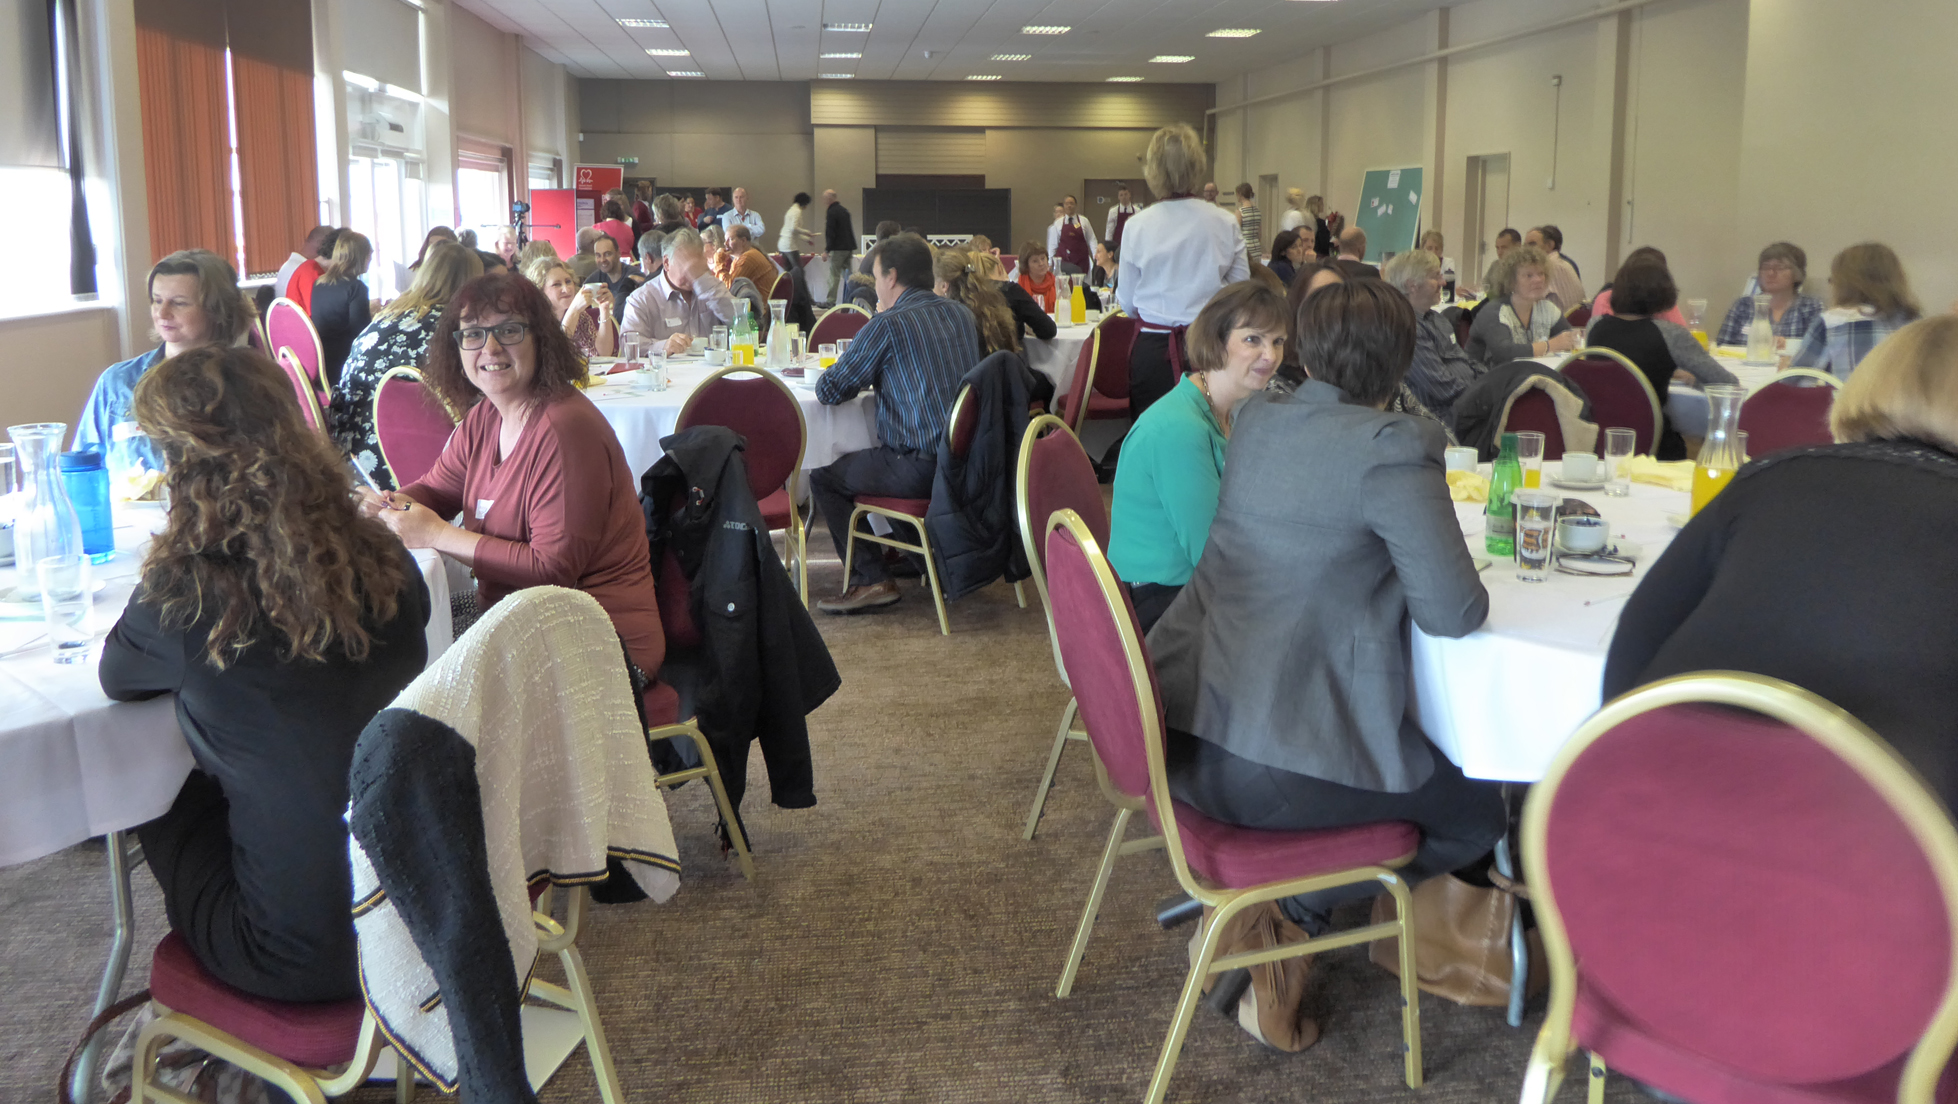 87 patients and supporters had a full but worthwhile day at the conference